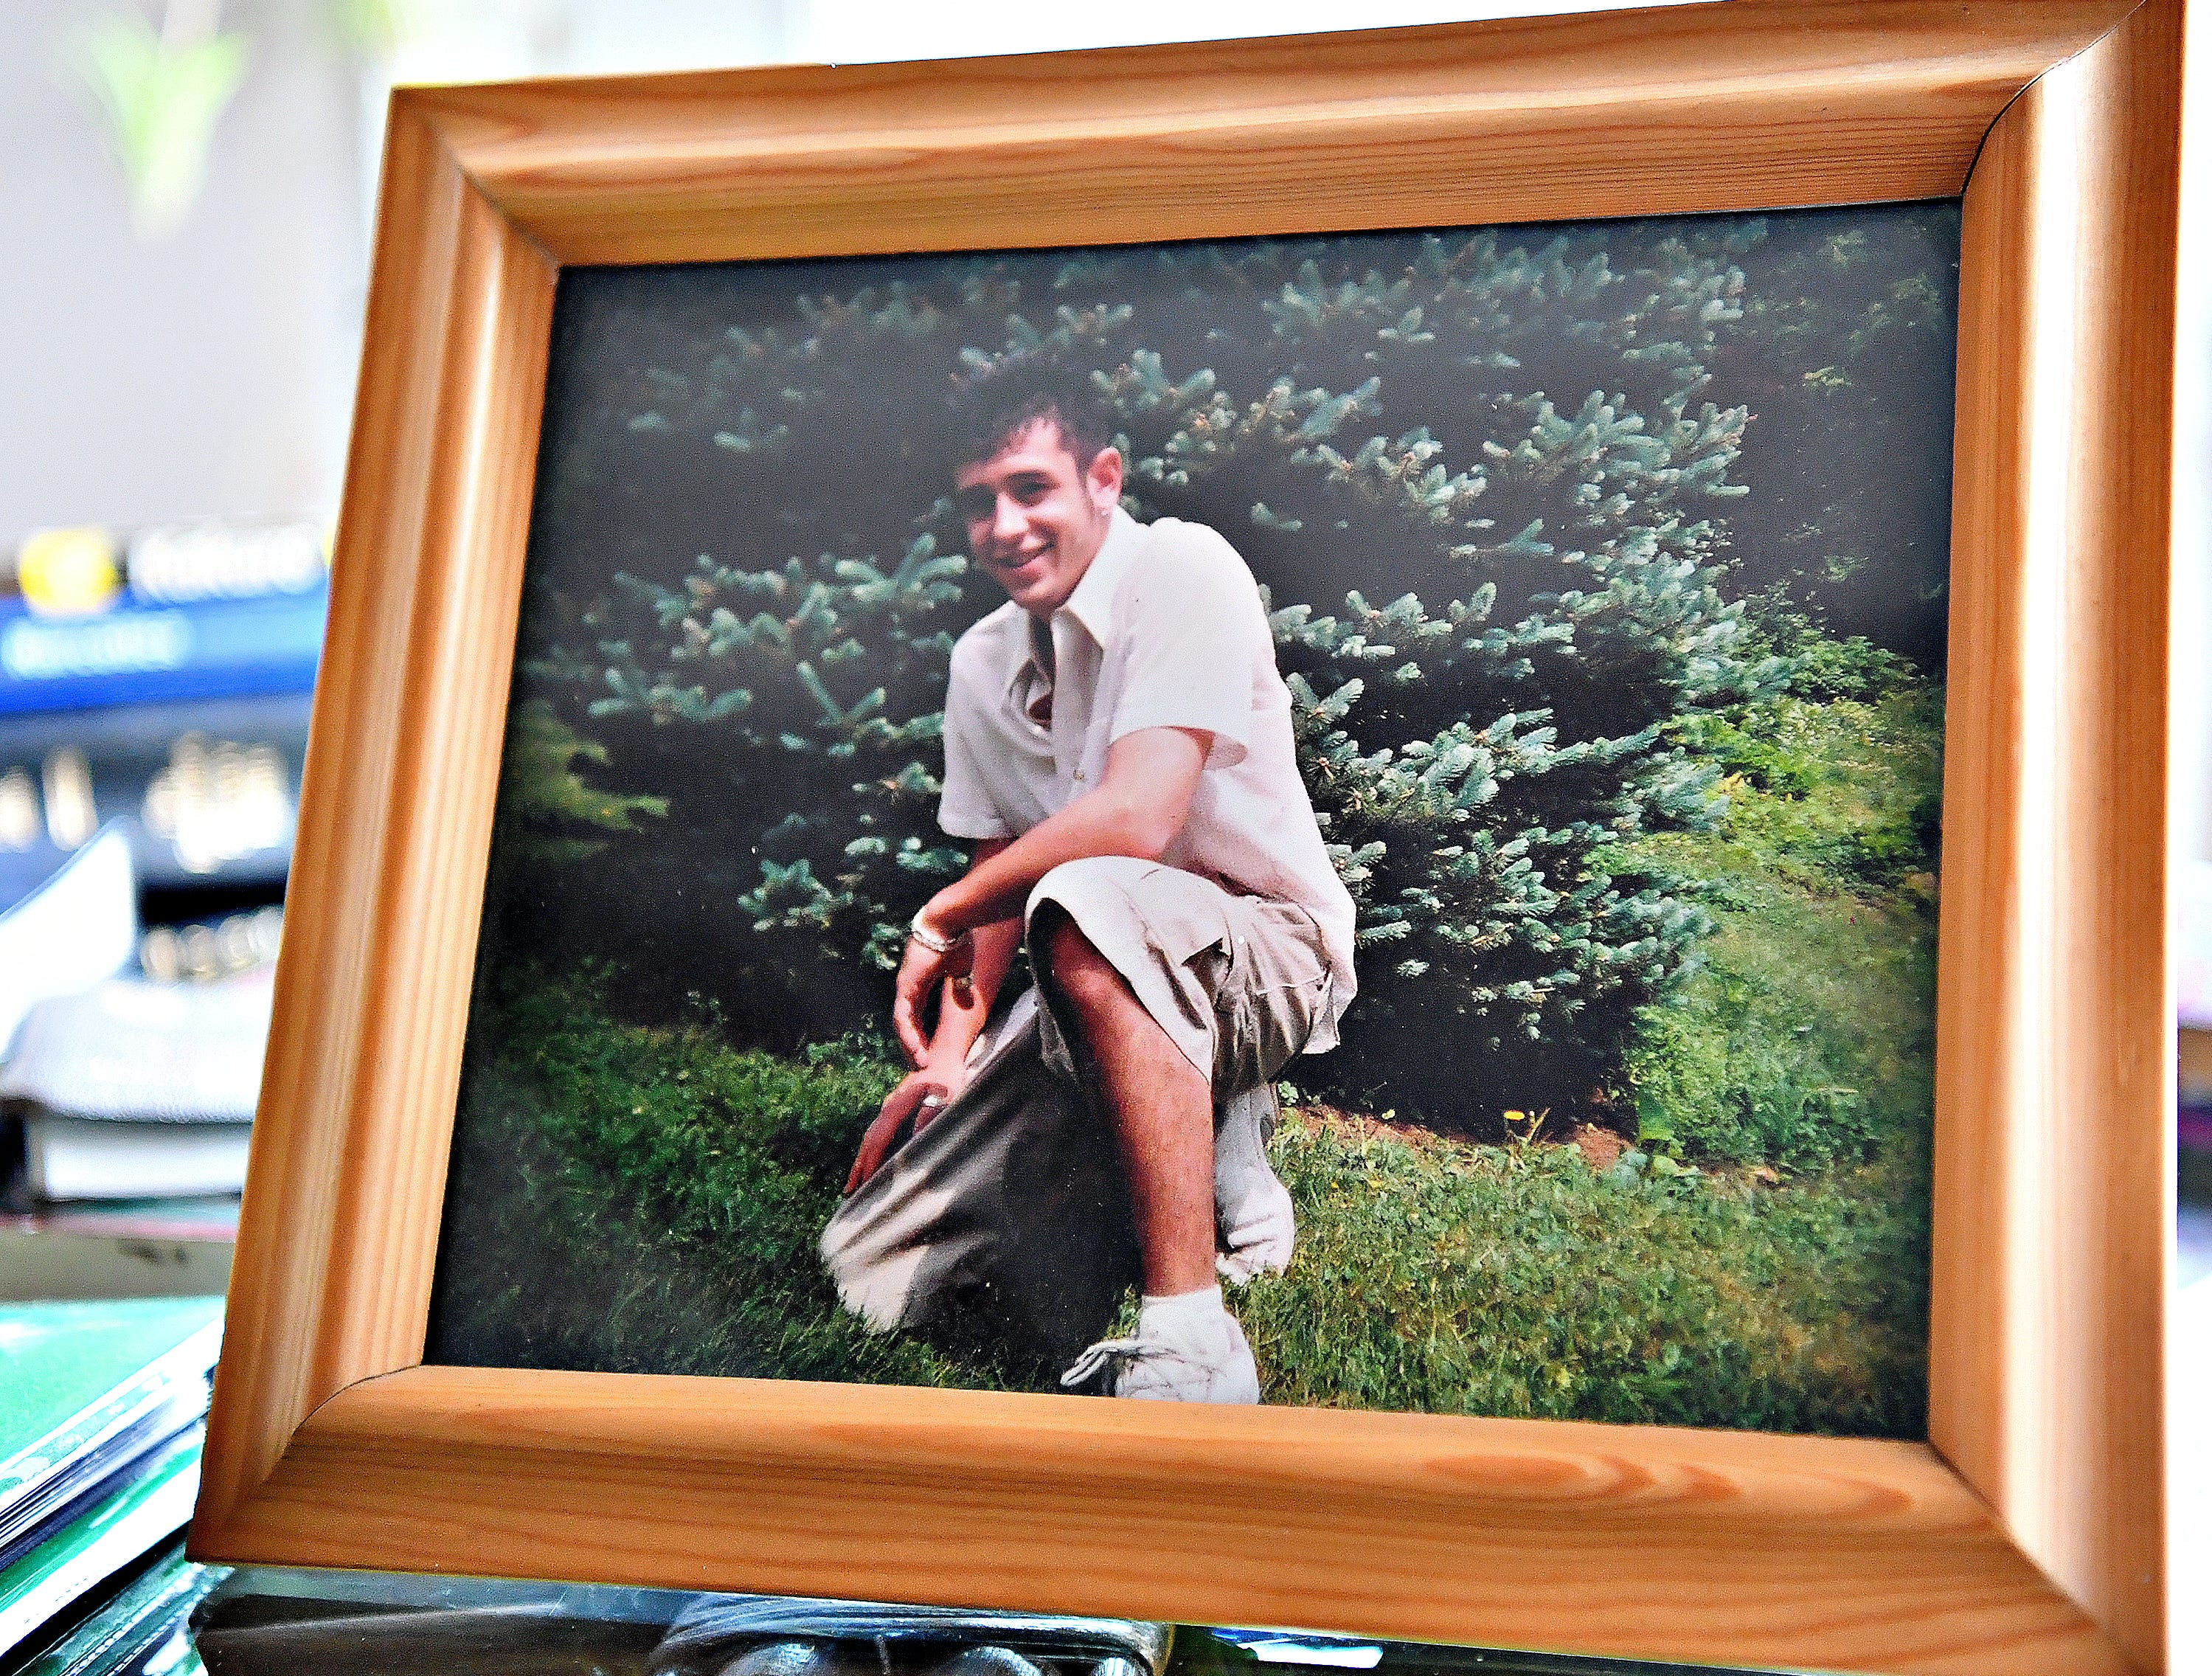 Alexander Lauer's senior picture amongst photo albums, journals and a plethora of notes and other research materials span the kitchen table at the Lauer home in York Township, Tuesday, Dec. 4, 2018. The materials belonged to Alexander Lauer, 33, who lost his decade-long battle with heroin unexpectedly on Nov. 20., just one week after being released from York Hospital for drug treatment. Dawn J. Sagert photo